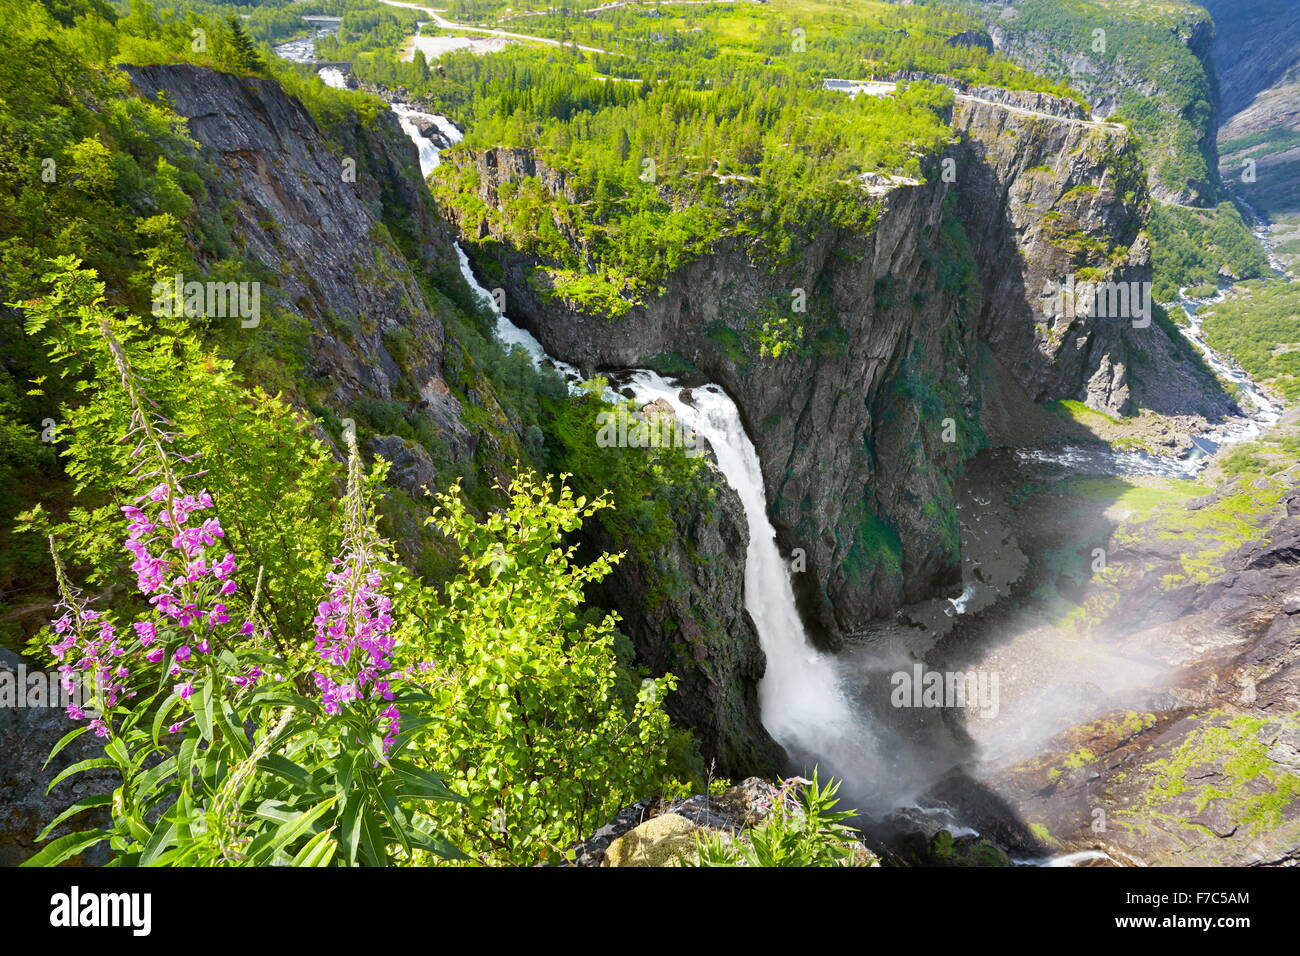 The Voringfossen waterfall, Hordaland, Norway - Stock Image